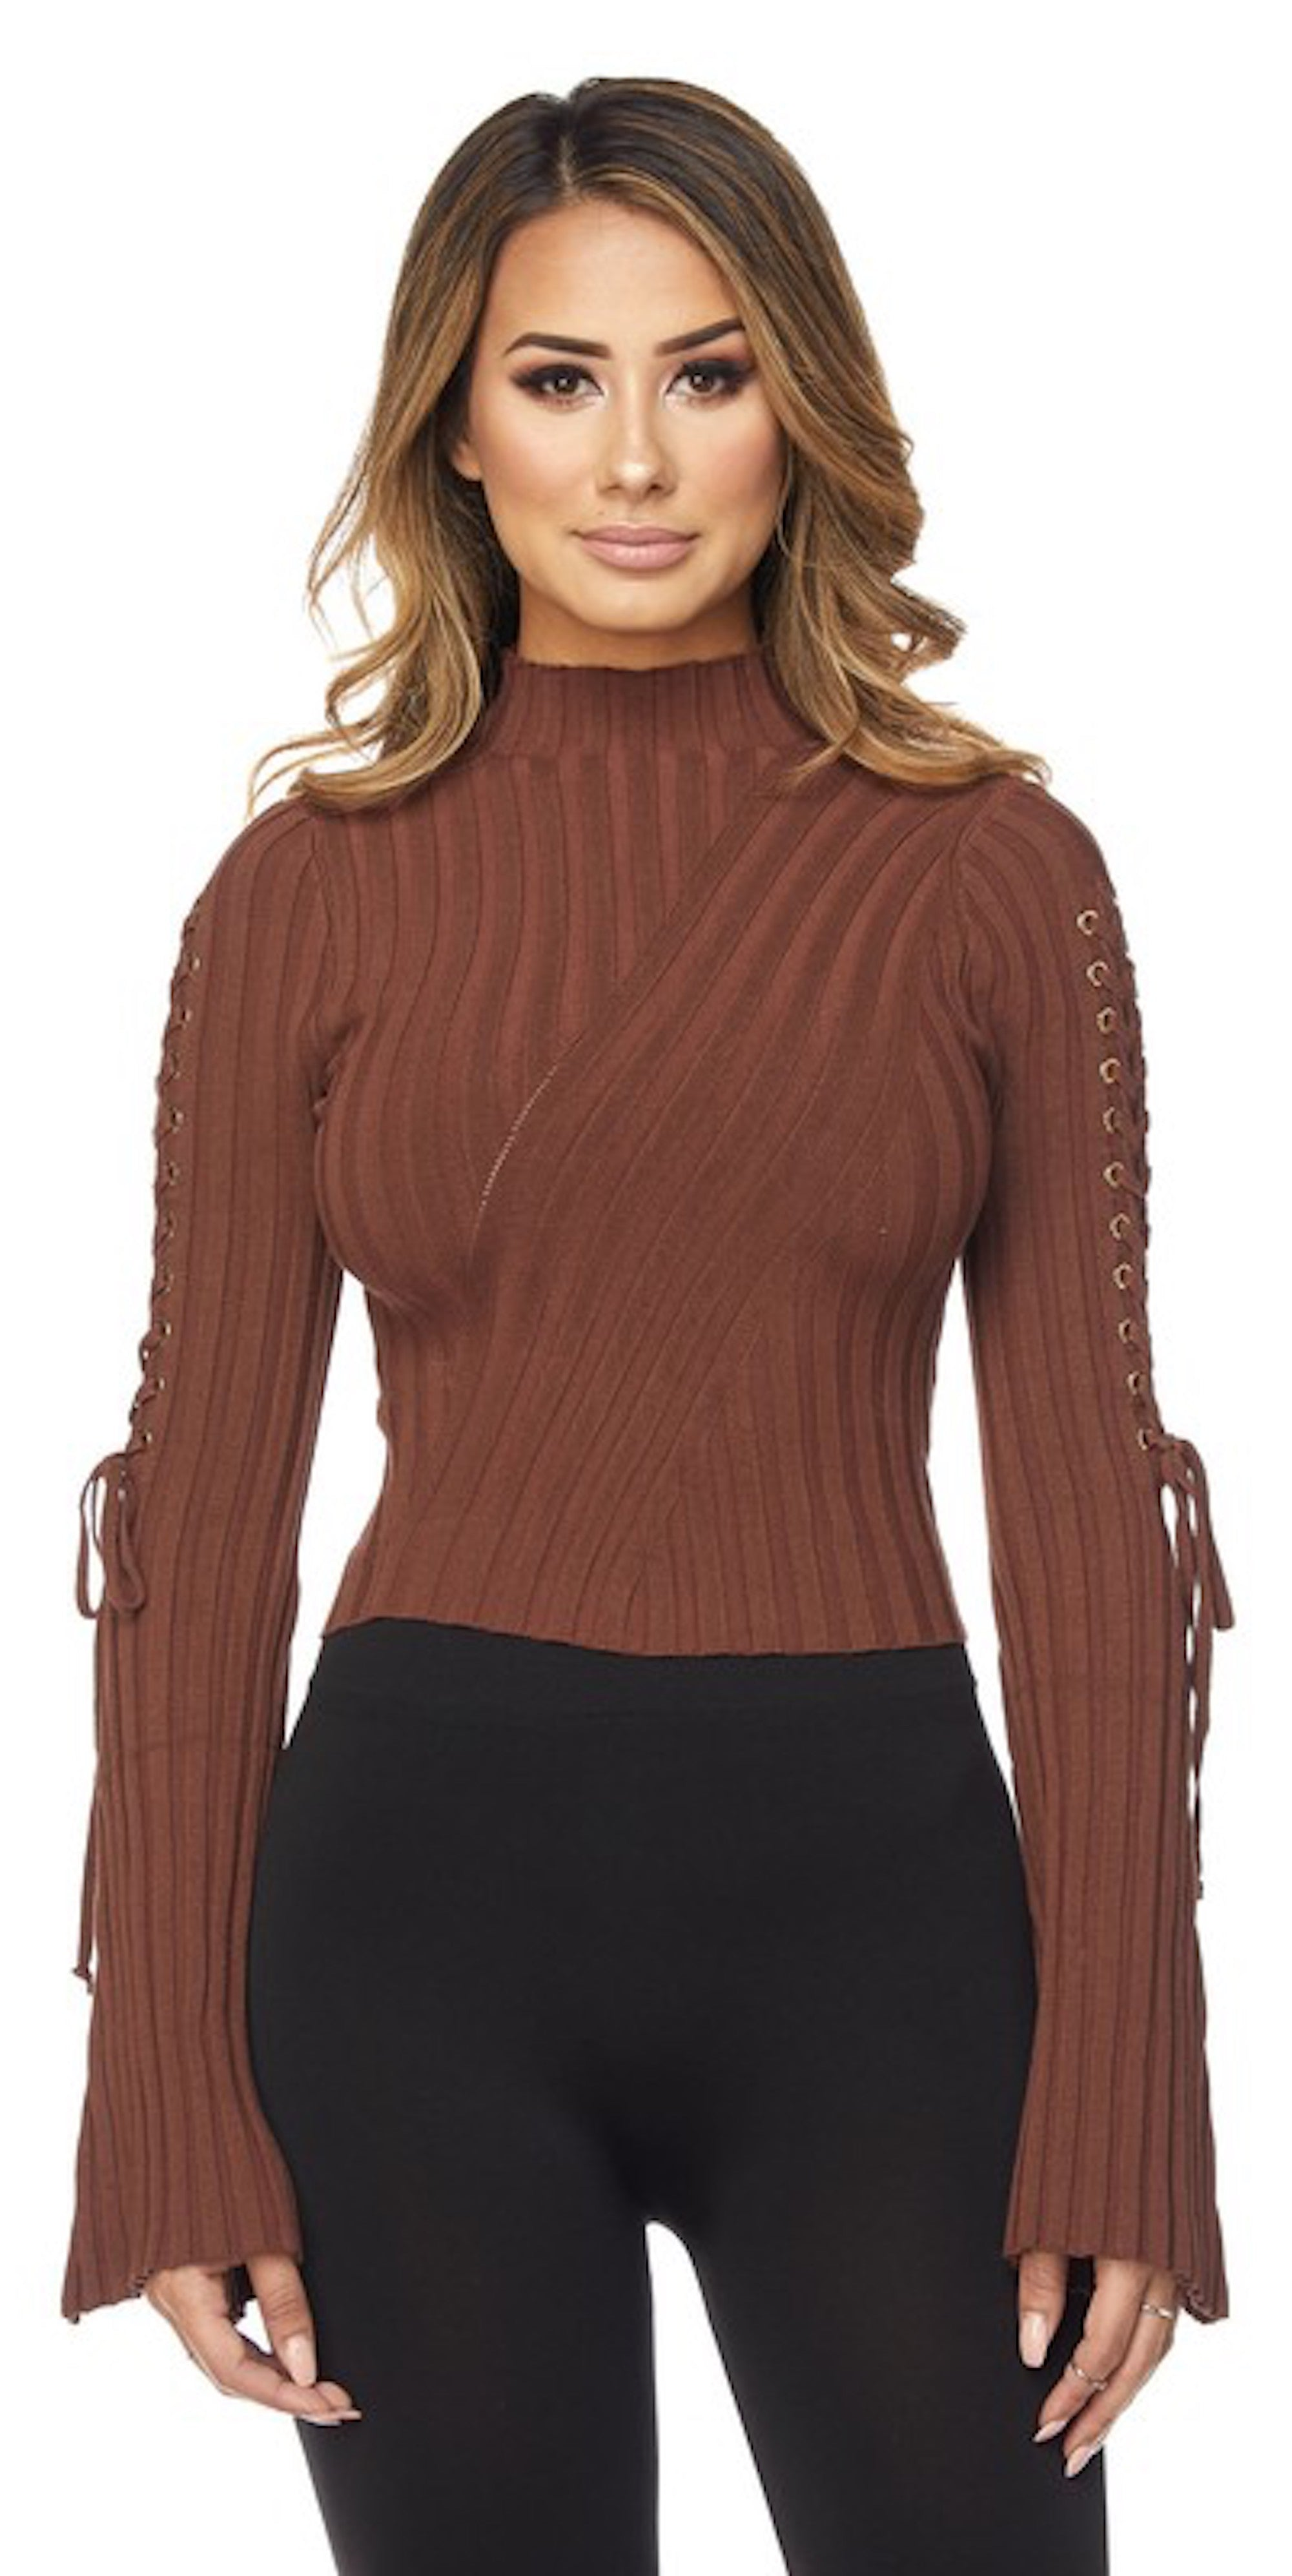 long sleeve lace up bell sleeve chocolate brown top fall knit fashion trend style clothes clothing